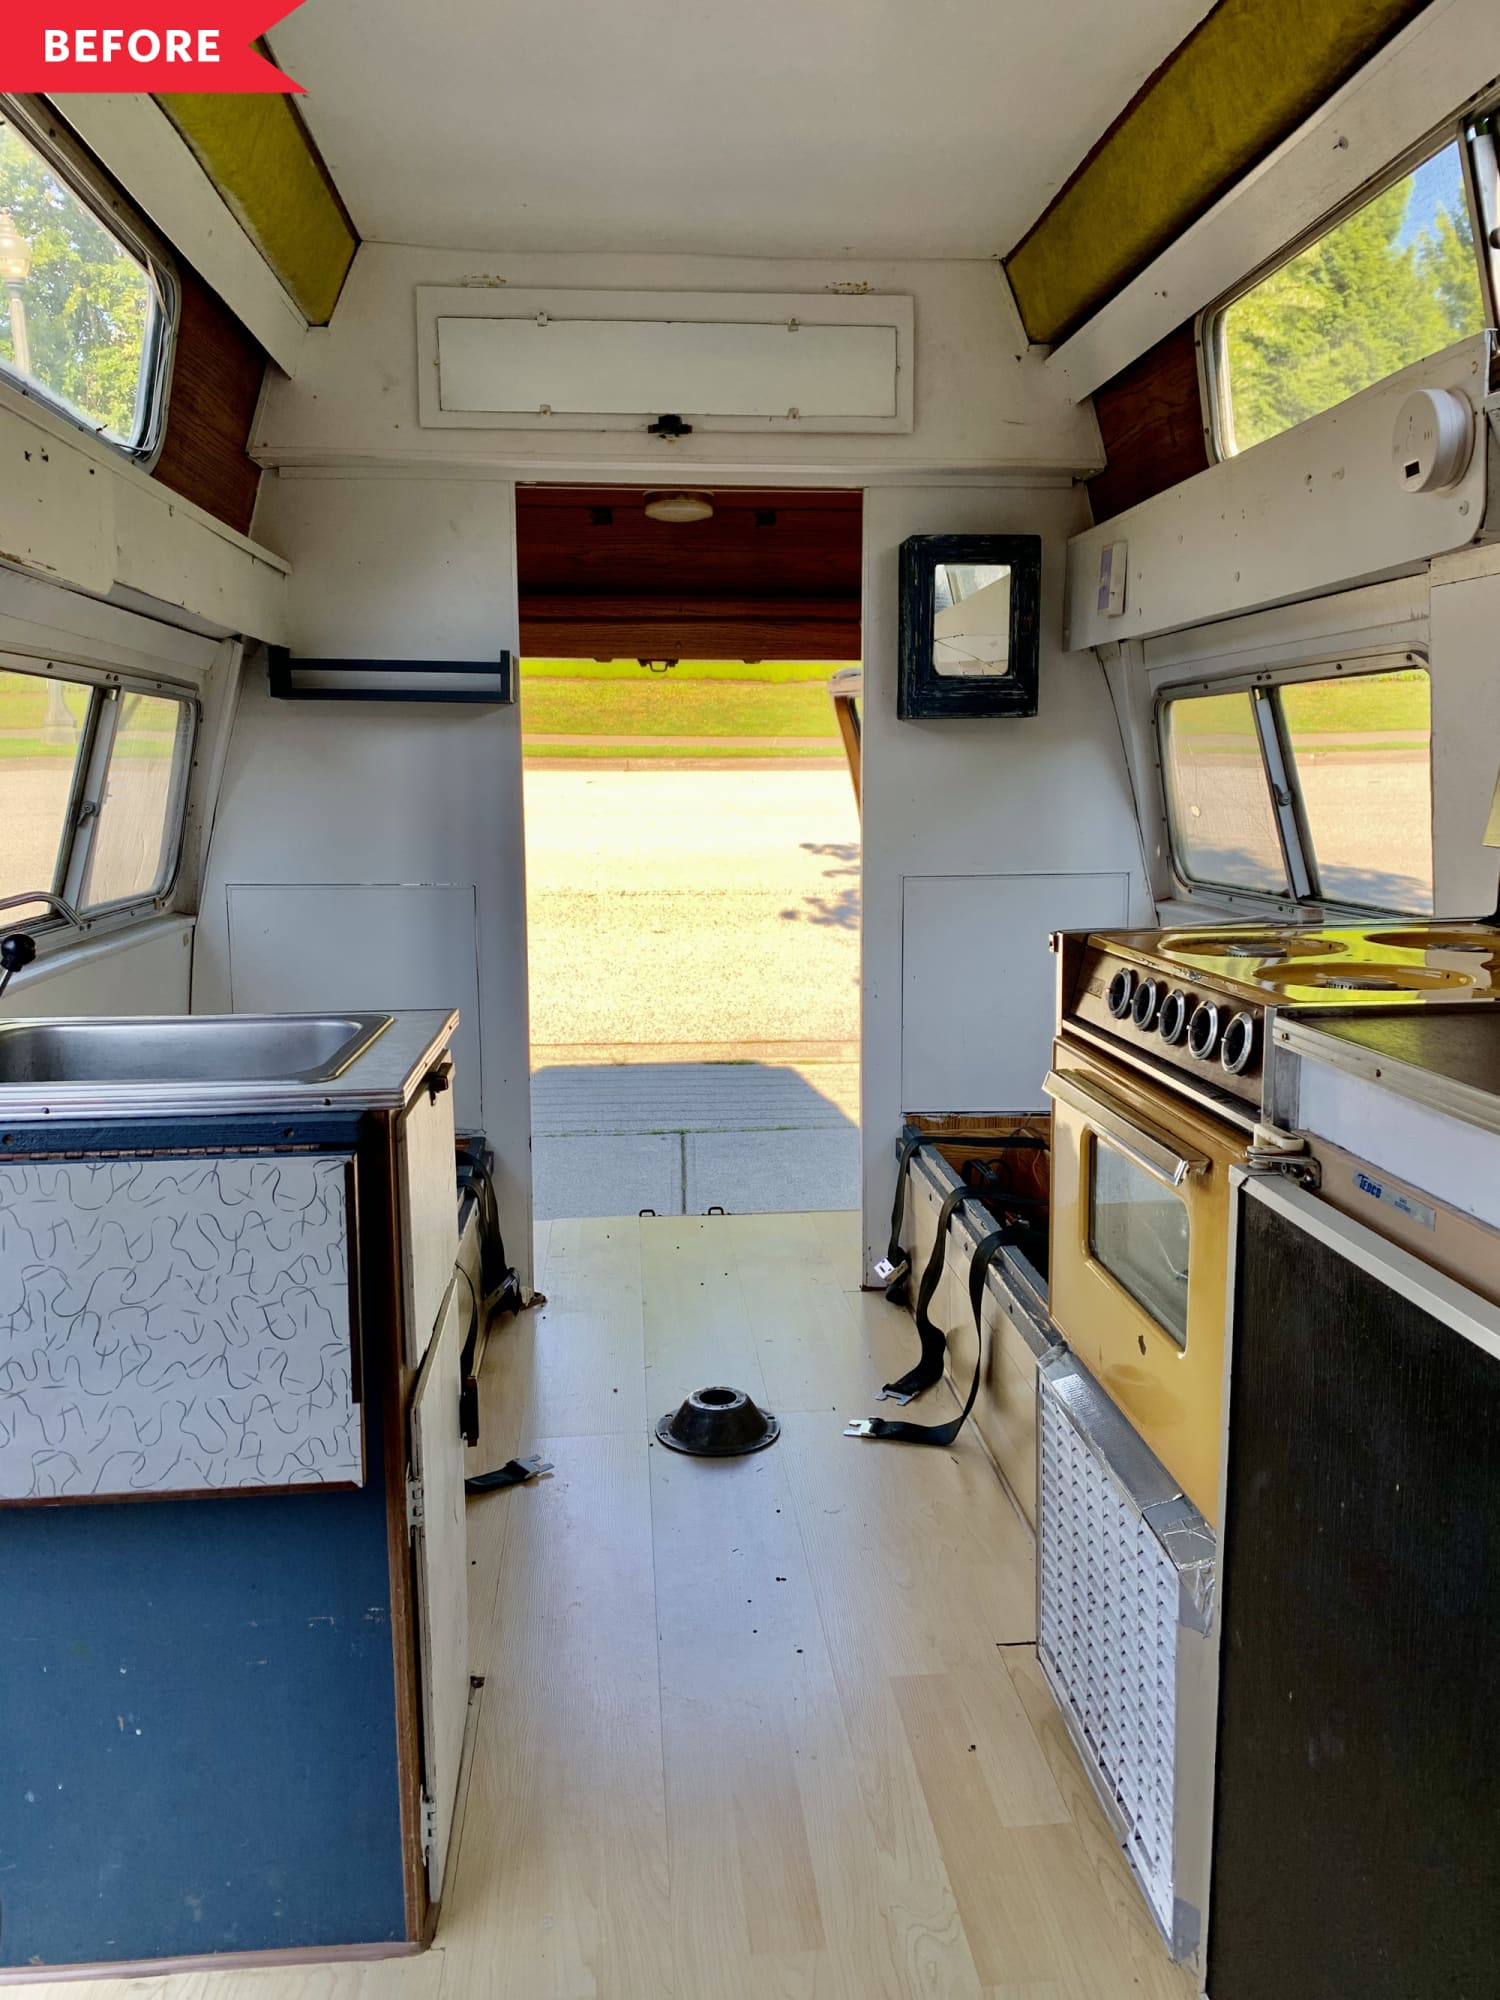 Before & After: Two Students Renovated a 1975 Van to Live, Travel, and Study In